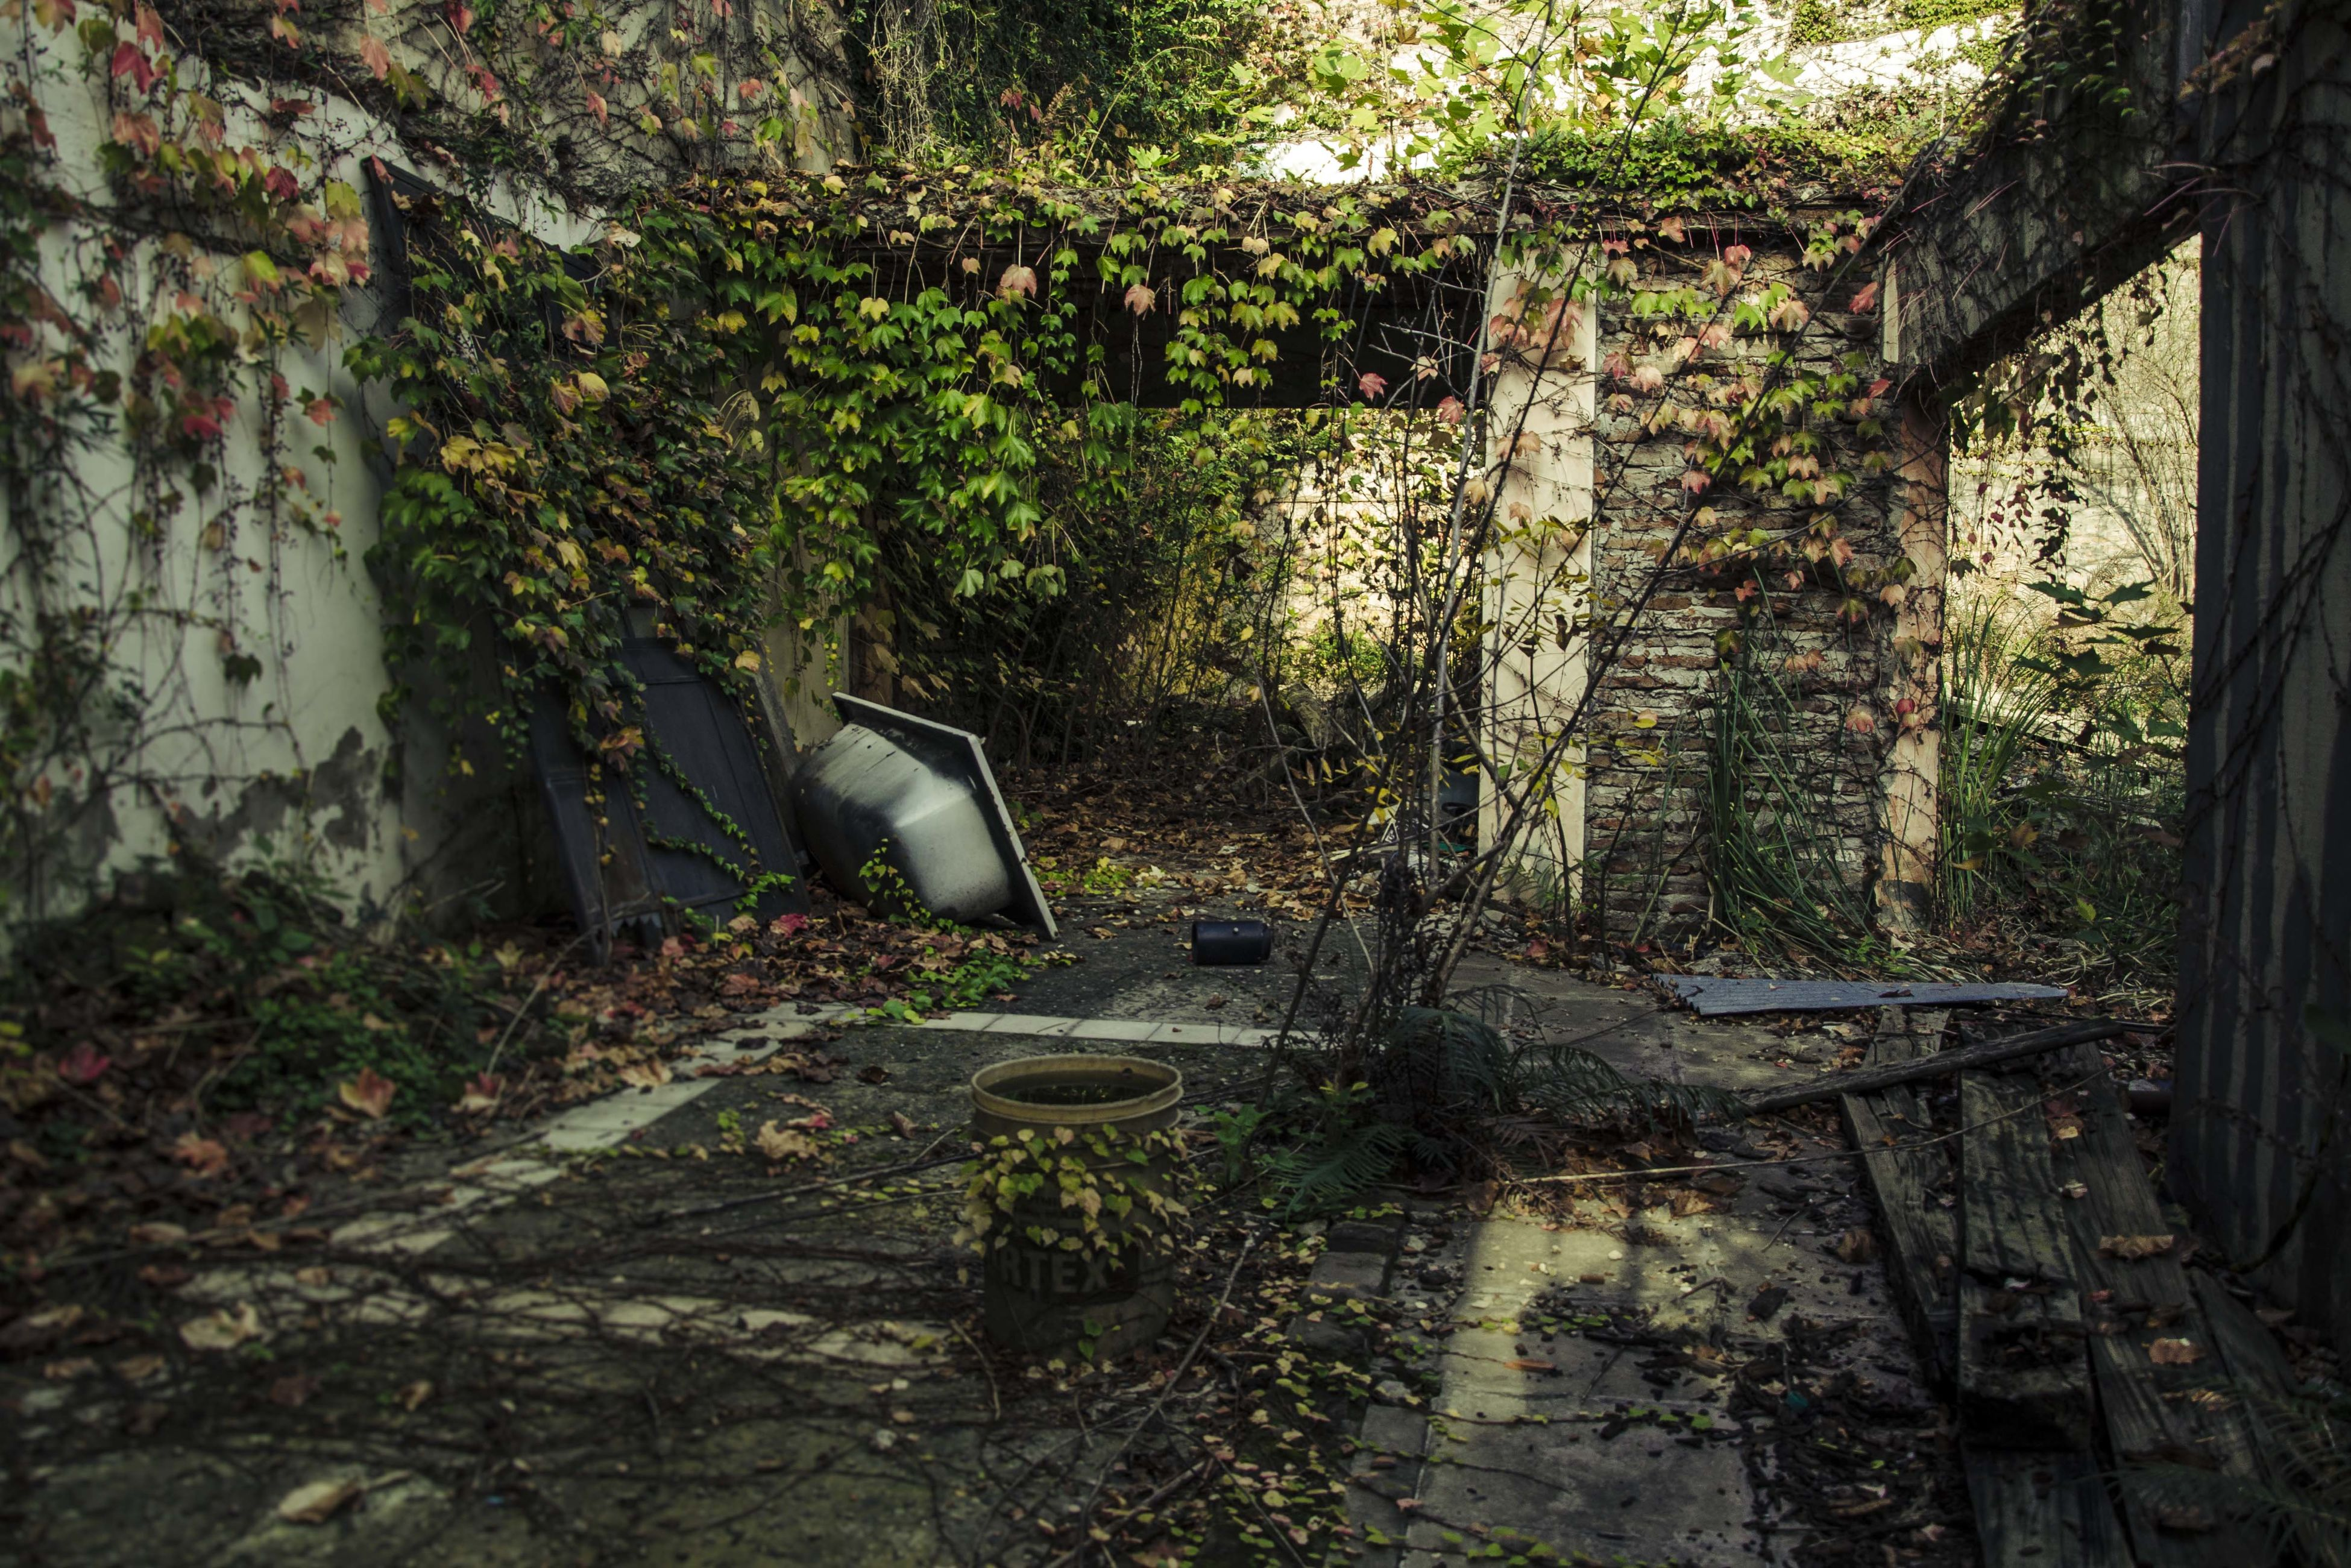 tree, abandoned, growth, built structure, tree trunk, plant, old, architecture, forest, day, house, absence, wood - material, chair, no people, sunlight, branch, obsolete, damaged, nature